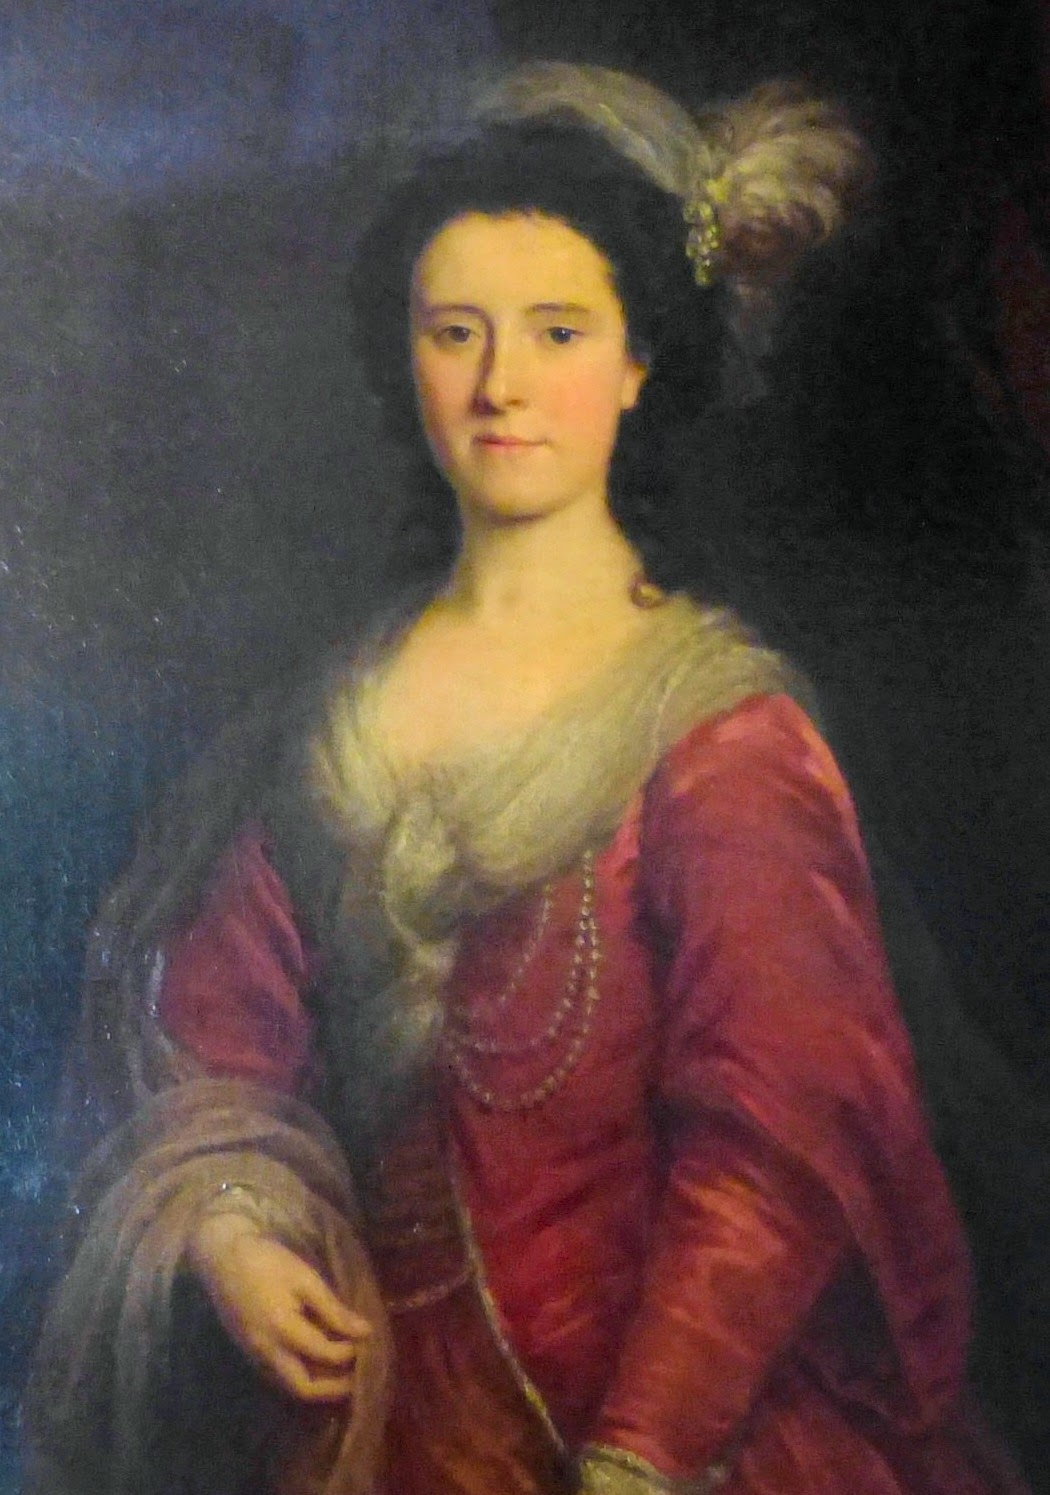 Probably Mrs John O'Neill - a painting at Stourhead